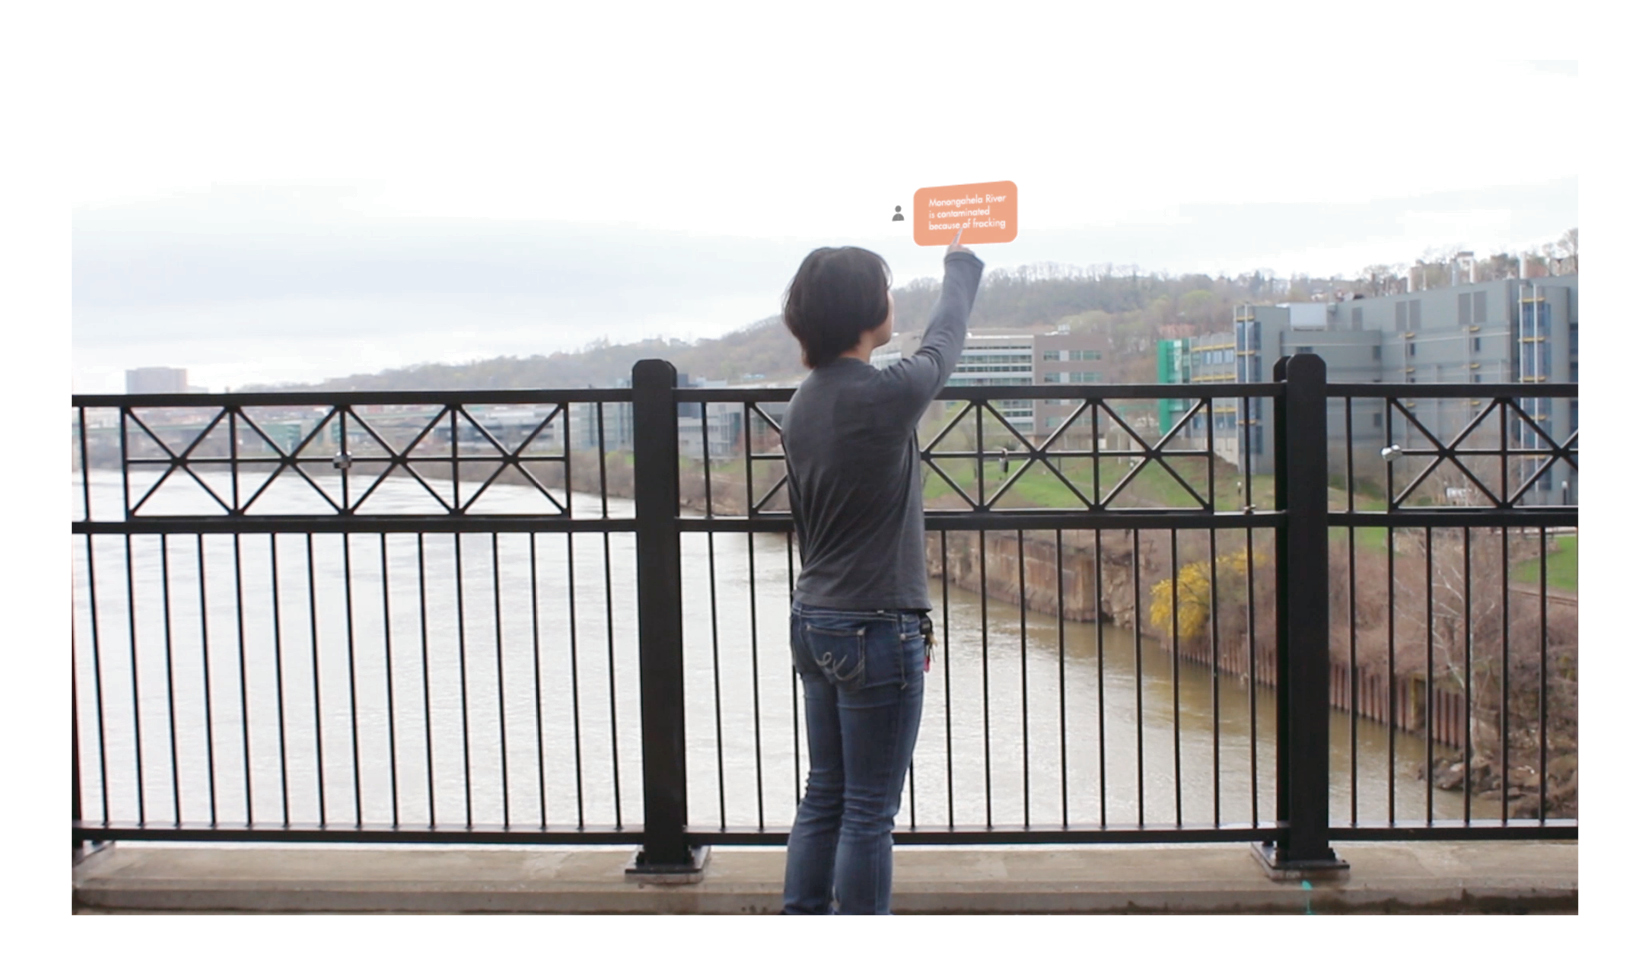 As she passes the Monogahela River, a bubble pops up prompting her with an opportunity to learn more.